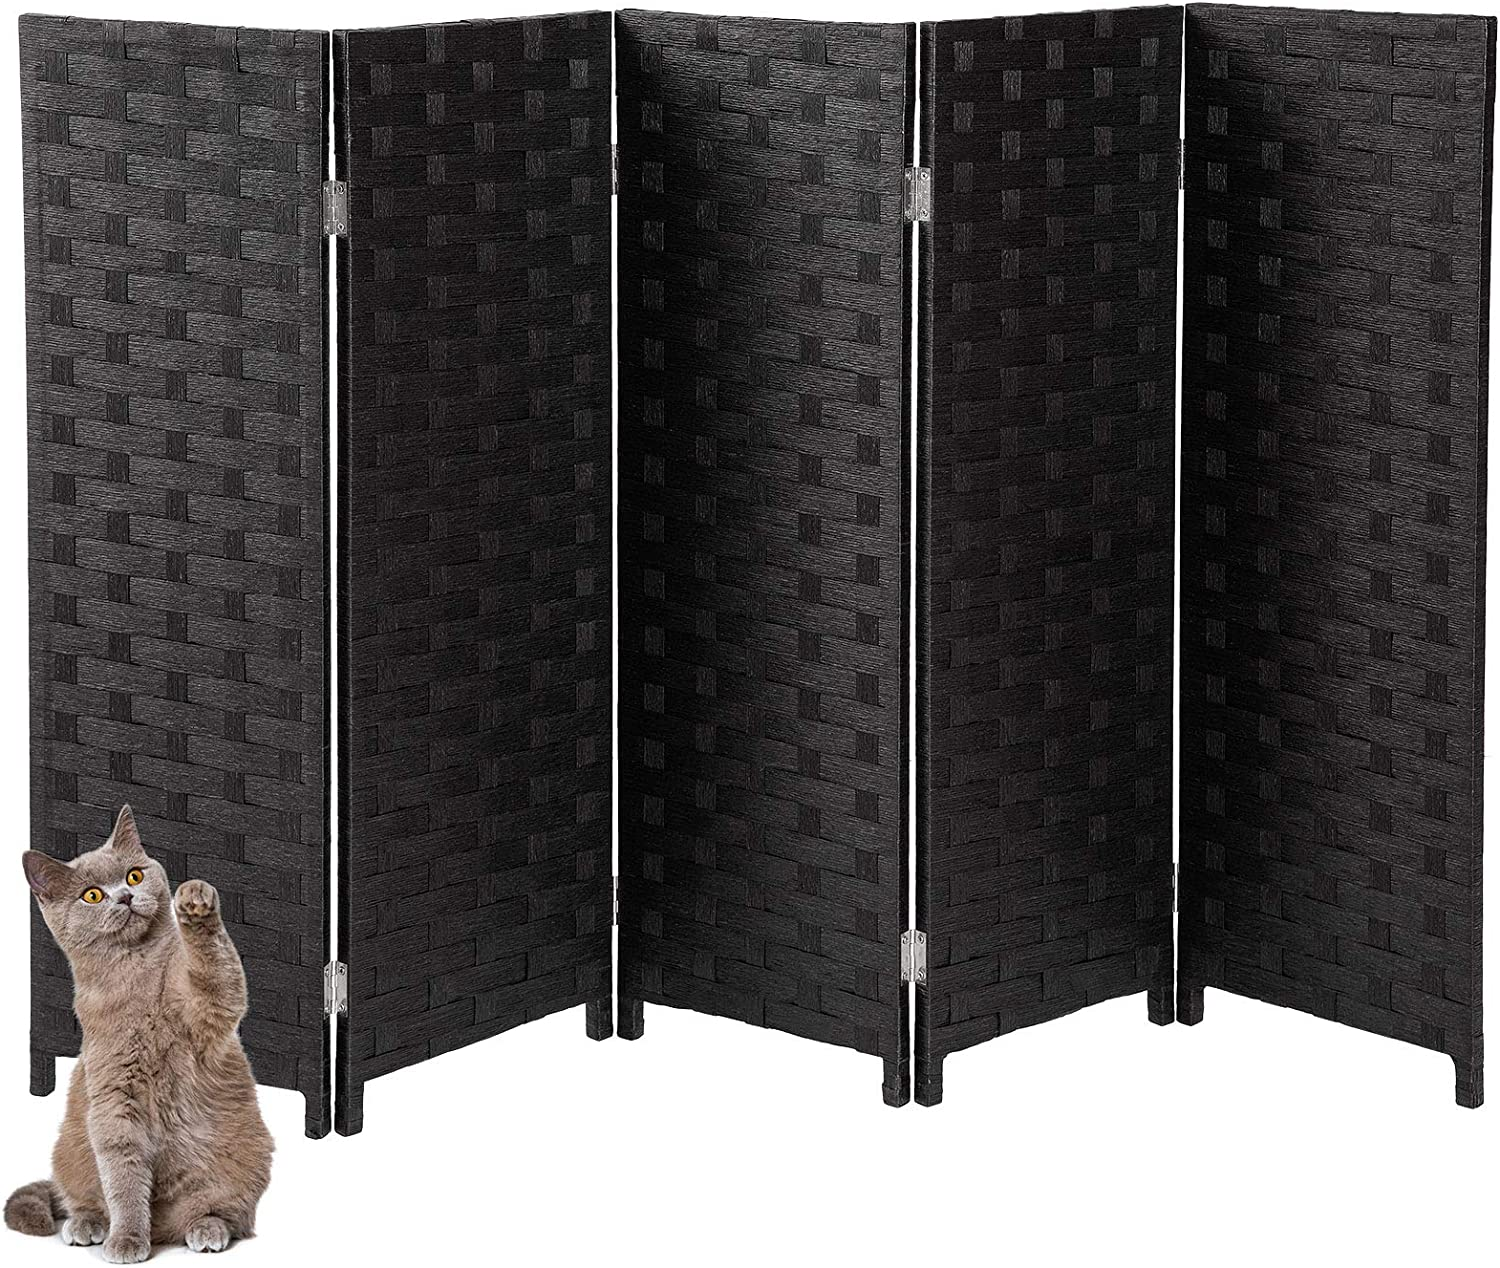 Yangbaga Cat Litter Box Privacy Screen Wide Today's Tampa Mall only 3.1' Foldab High 5'